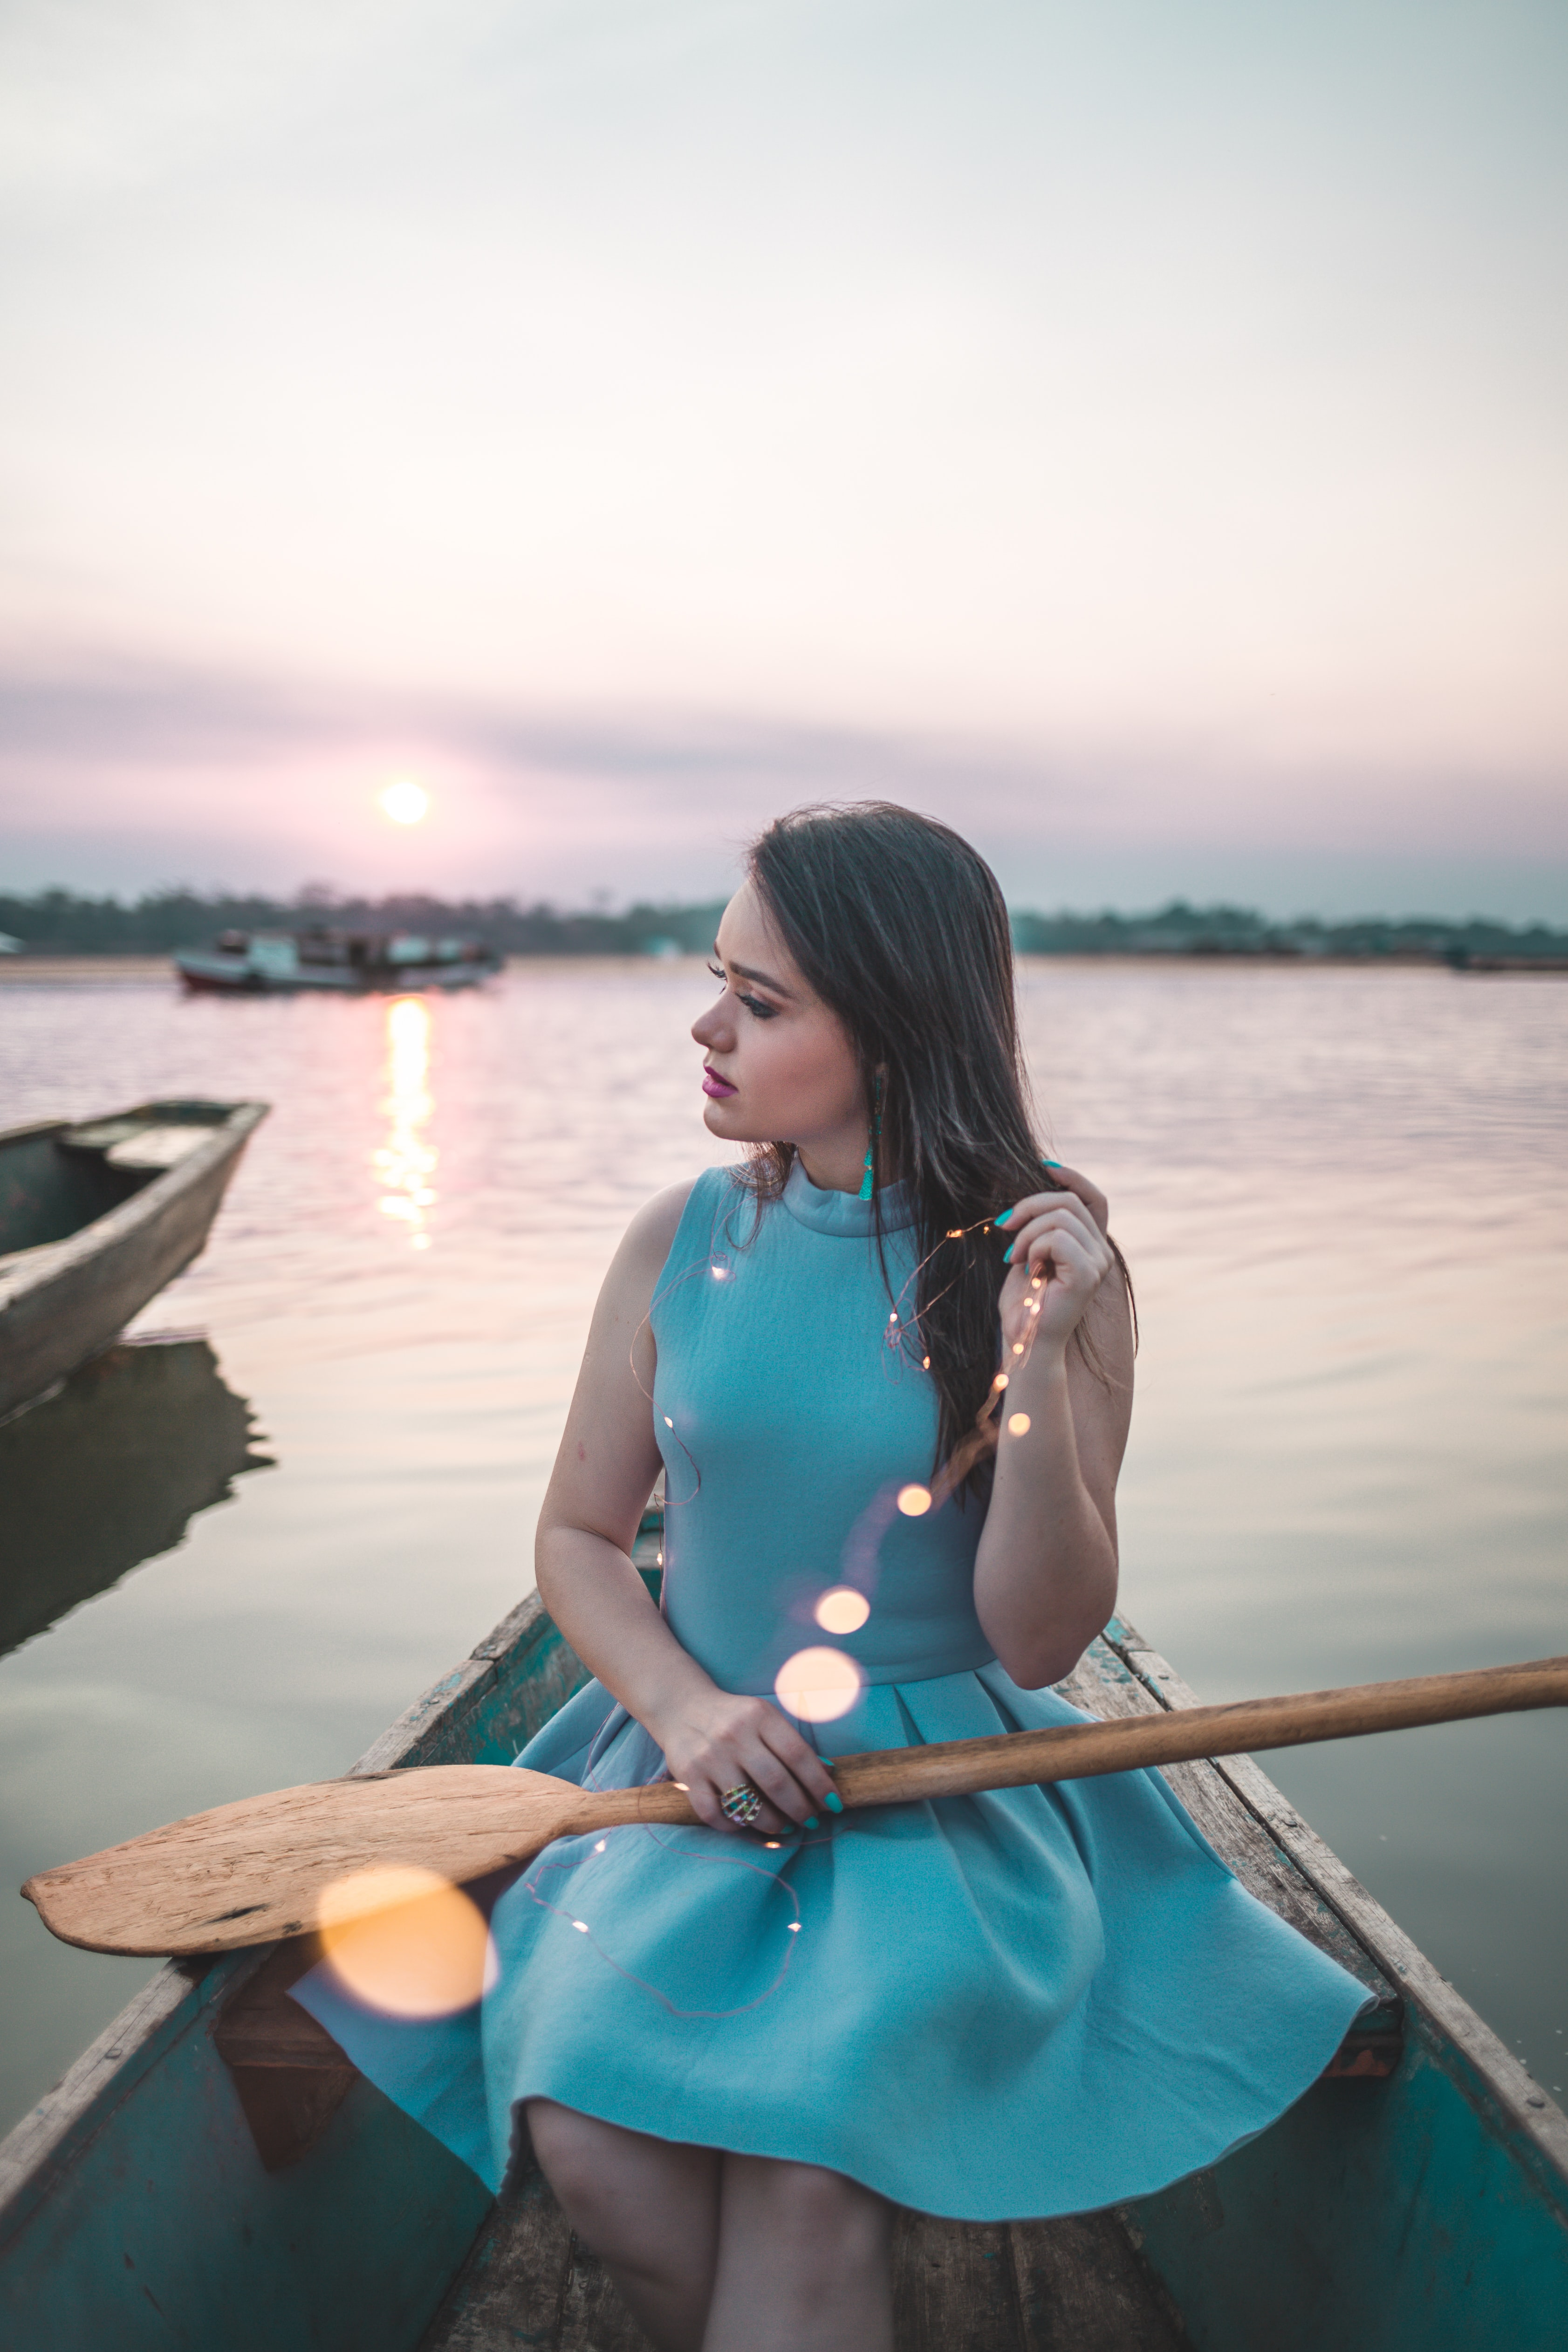 woman sitting on boat holding paddle